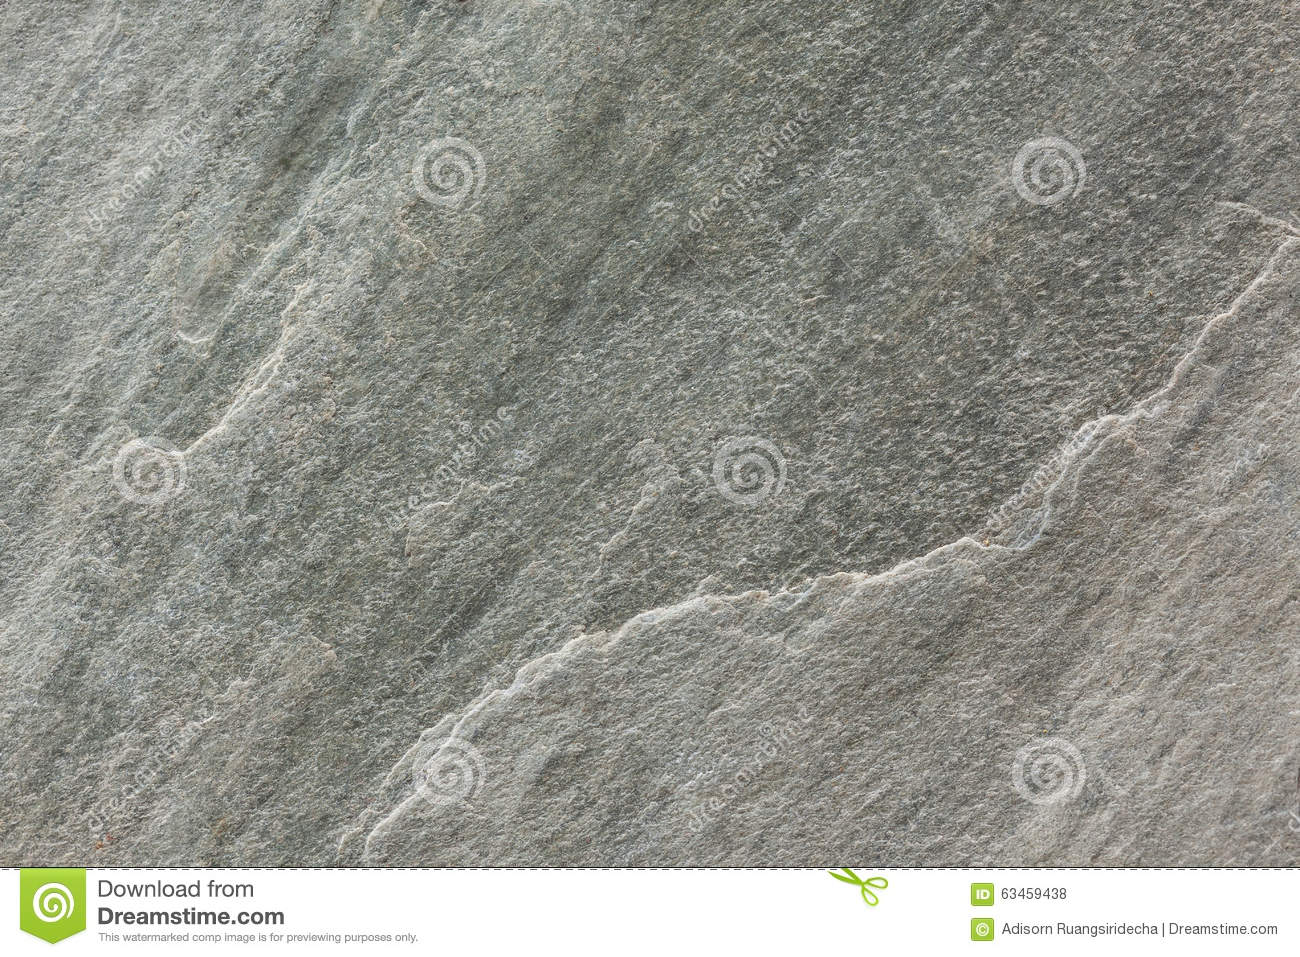 Light Gray Tile With Texture : Light grey stone tile texture material stock photo image